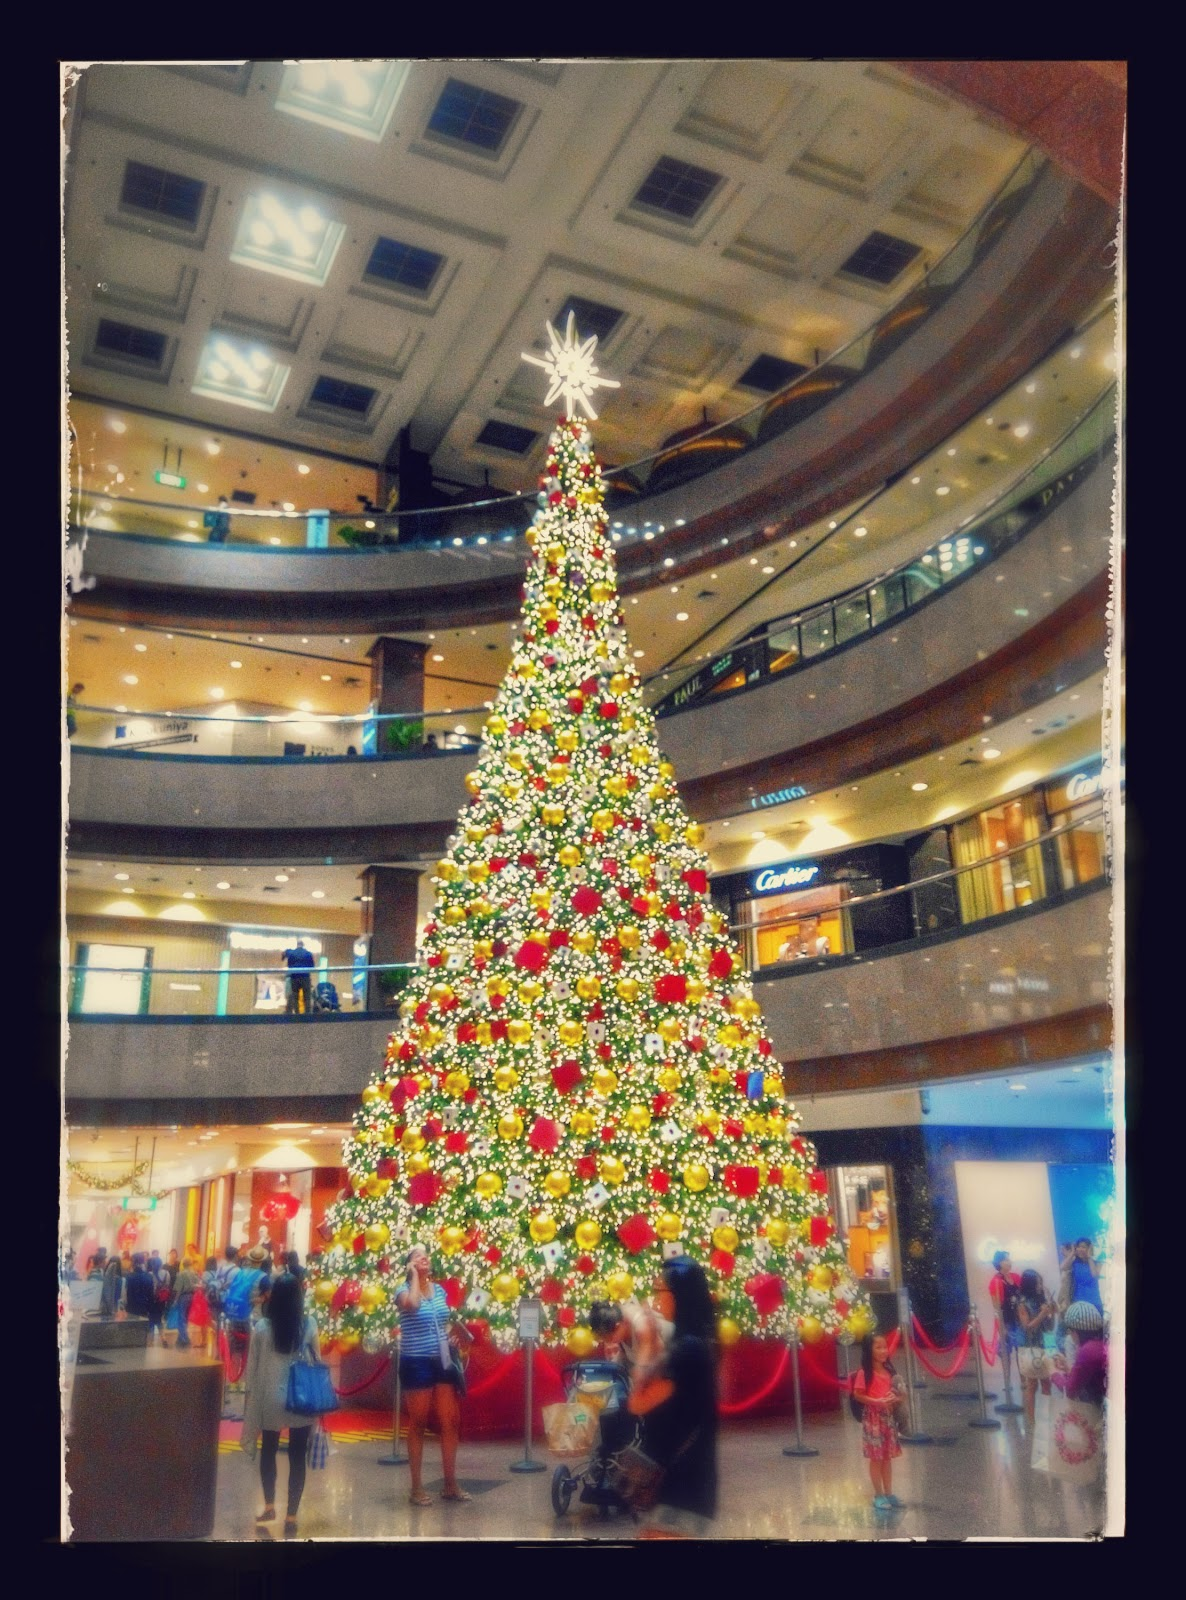 Christmas Tree, Takashimaya, Orchard Road, Singapore